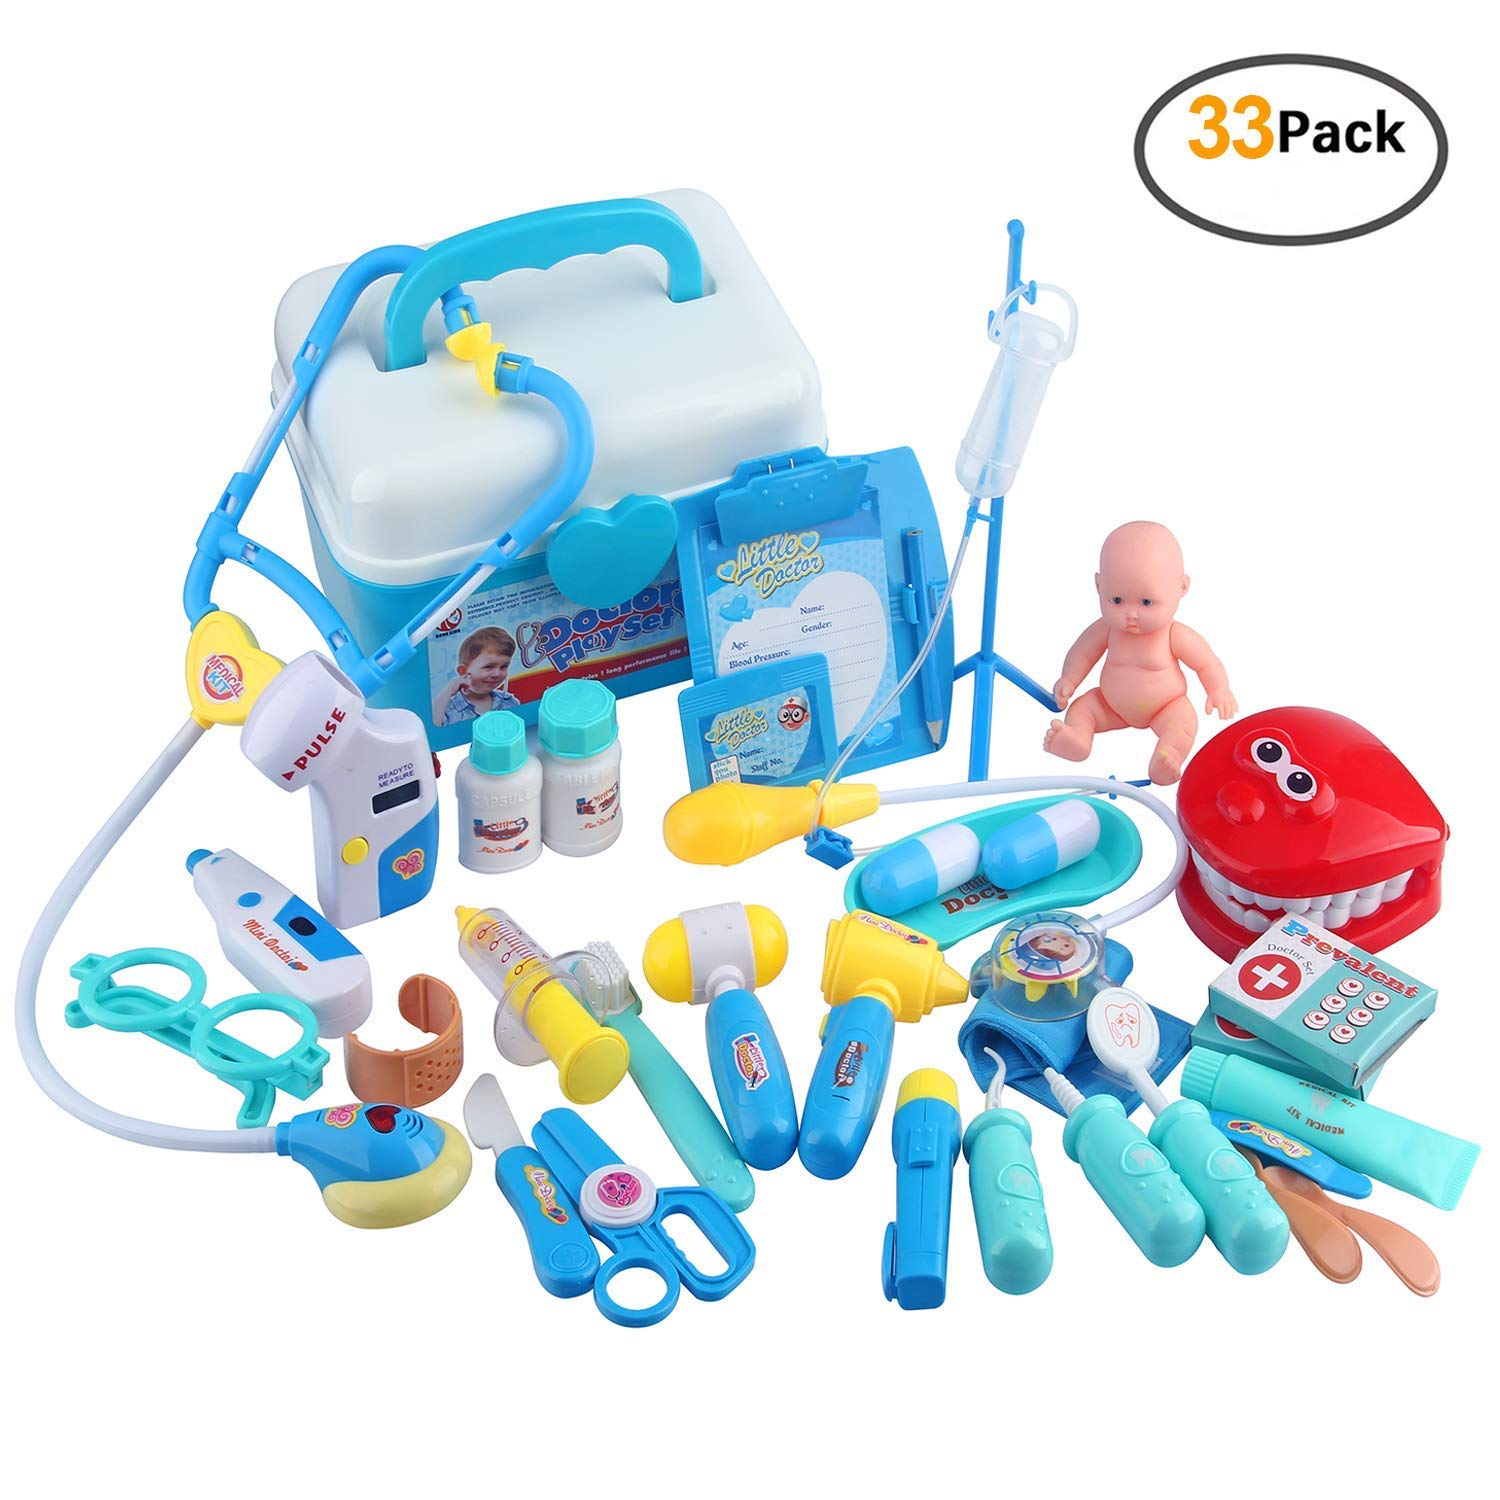 Doctor Kits for Kids with Stethoscope and Coat Medical Kit for Tolddlers, Pretend Doctor Playset 33 Pack for Kids Basic SkillsDoctor Kits for Kids with Stethoscope and Coat Medical Kit for Tolddlers, Pretend Doctor Playset 33 Pack for Kids Basic Skills